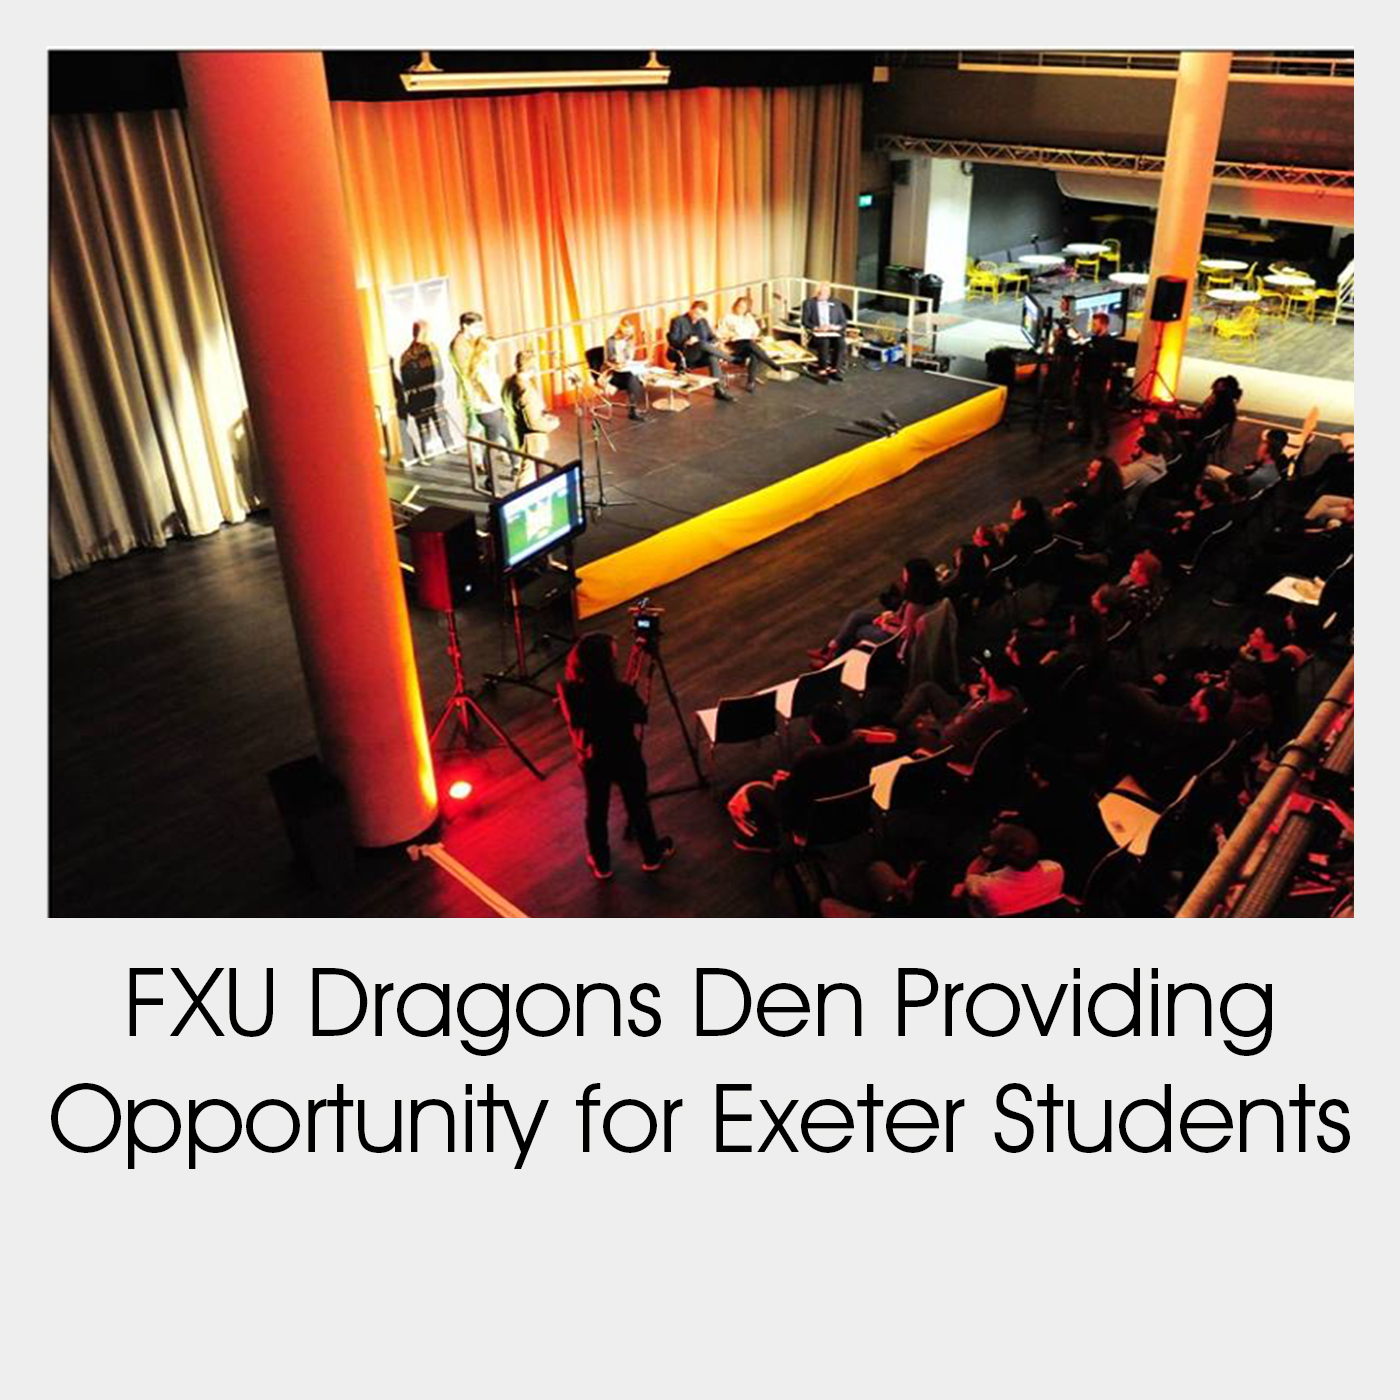 FXU Dragons' Den